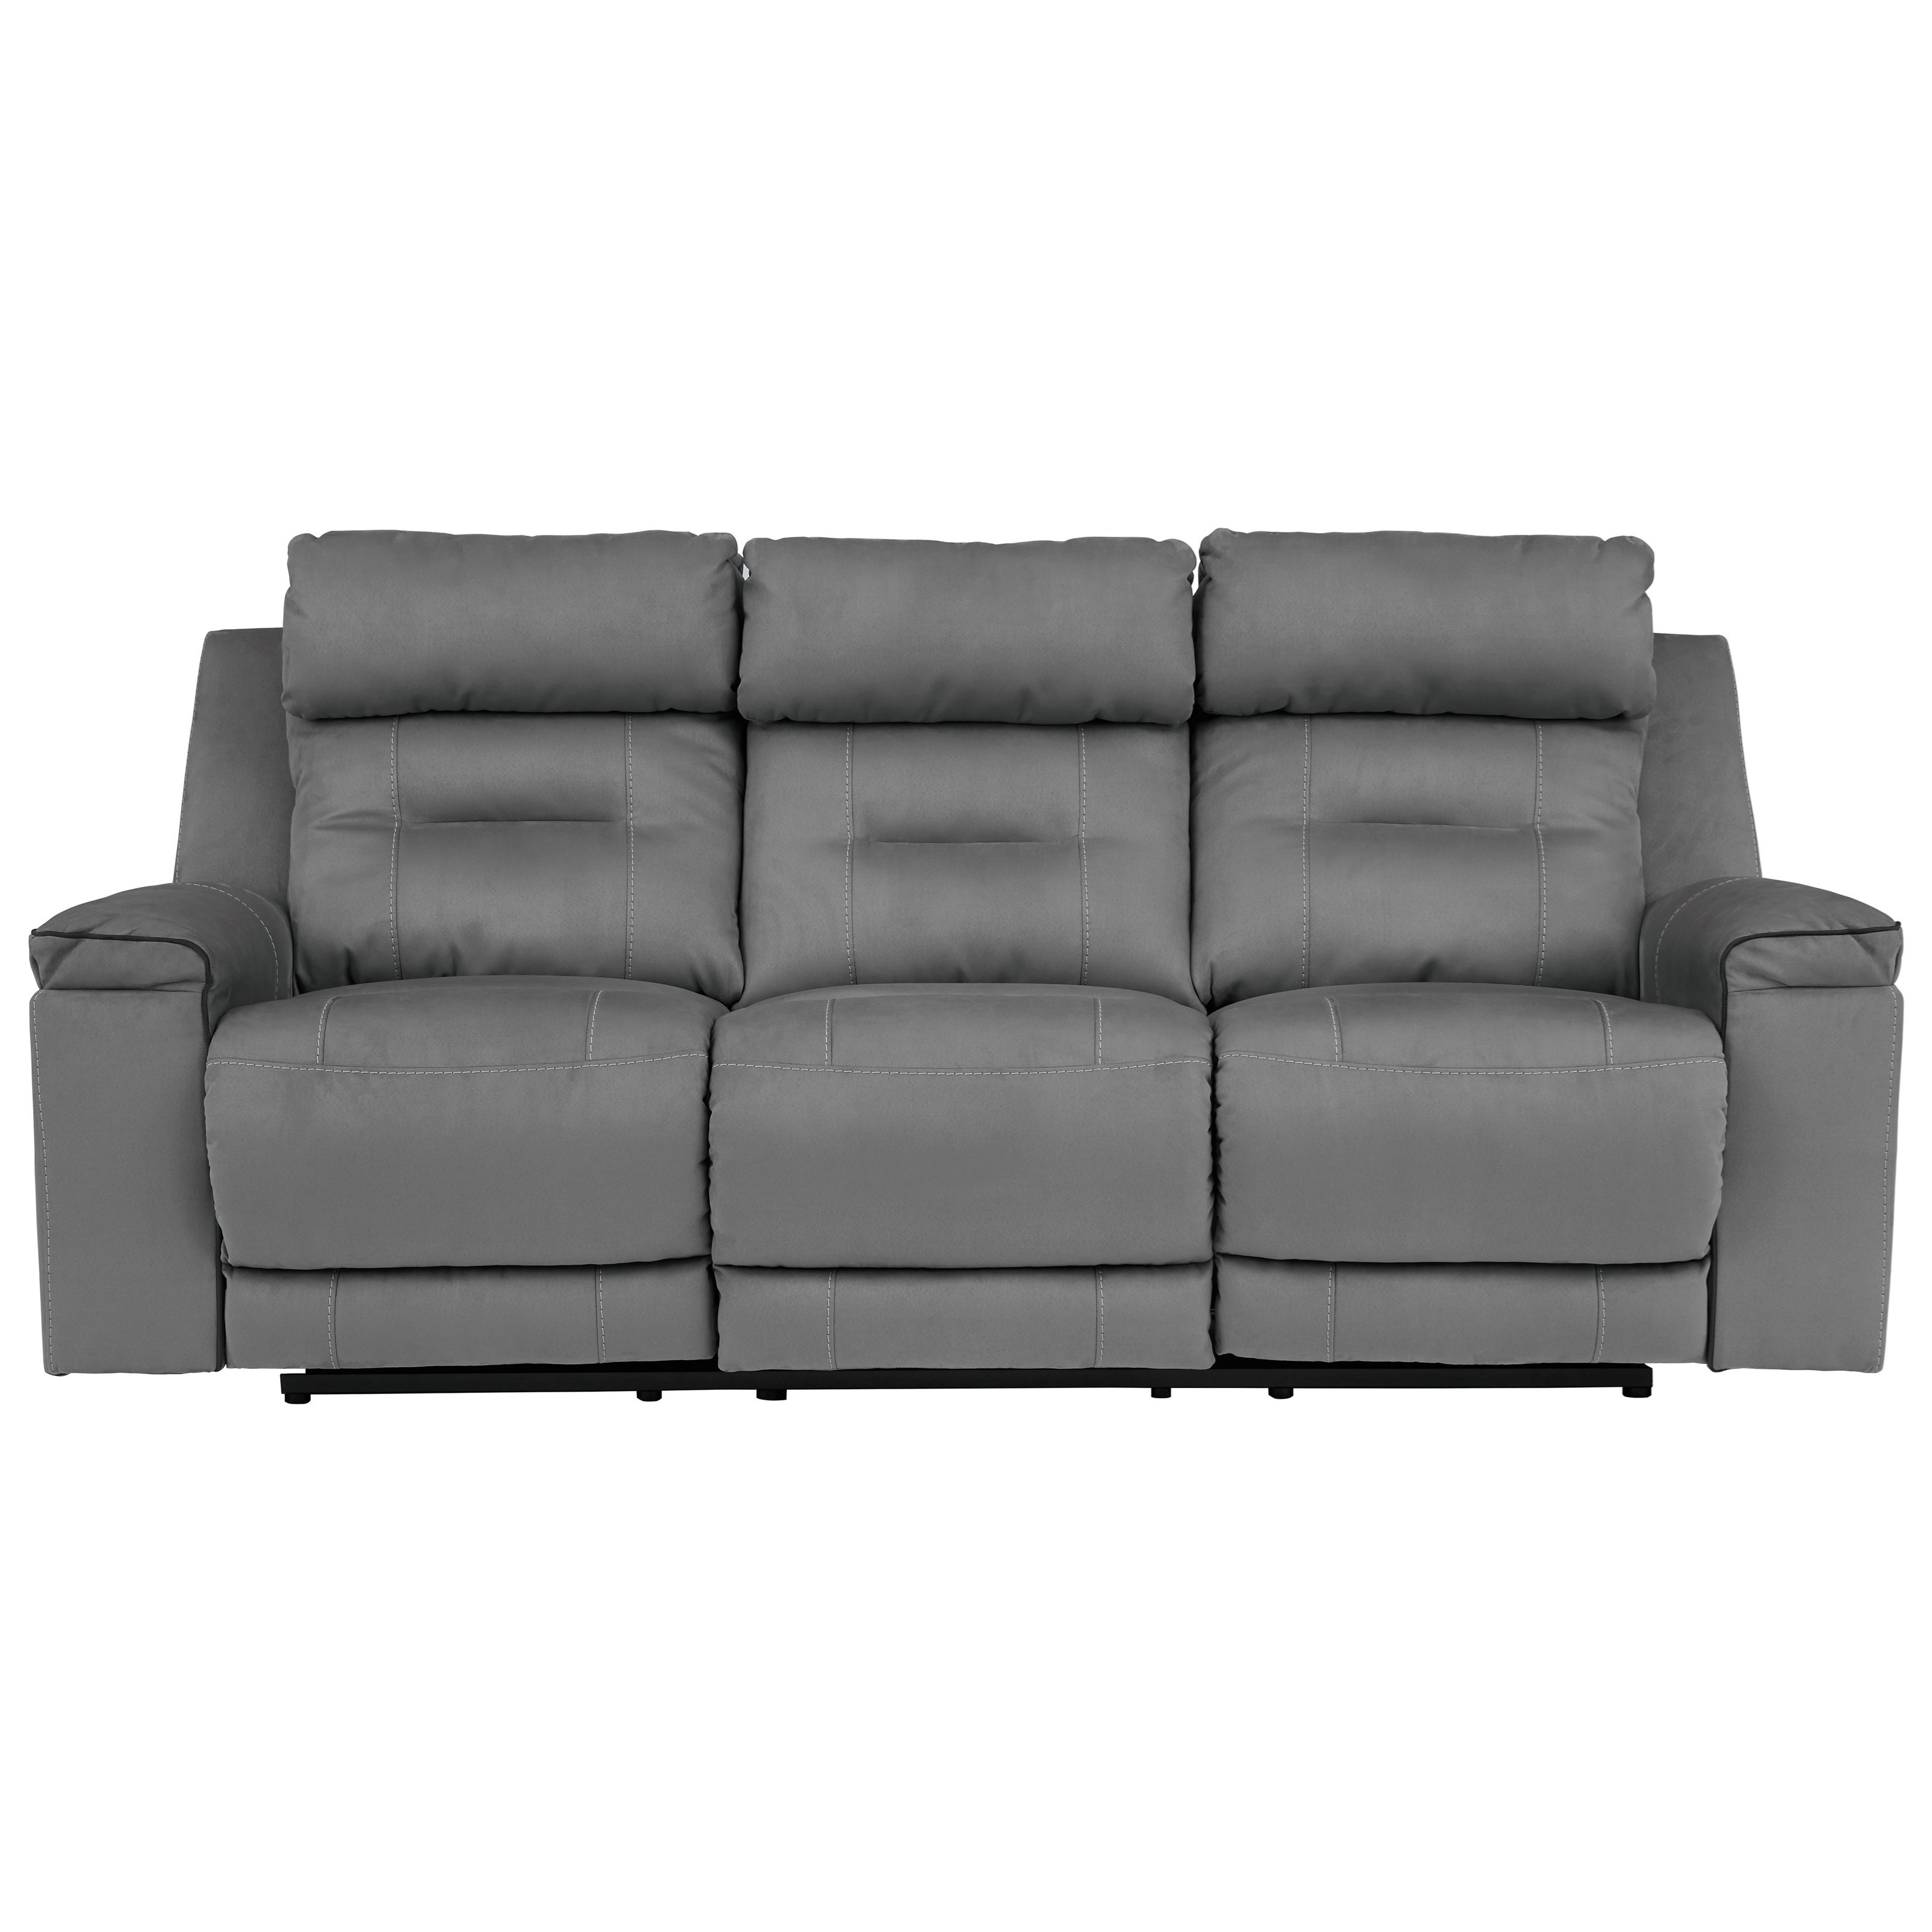 Signature Design By Ashley Trampton 3130315 Contemporary Power Reclining Sofa With Adjustable Headrests Beck S Furniture Reclining Sofas